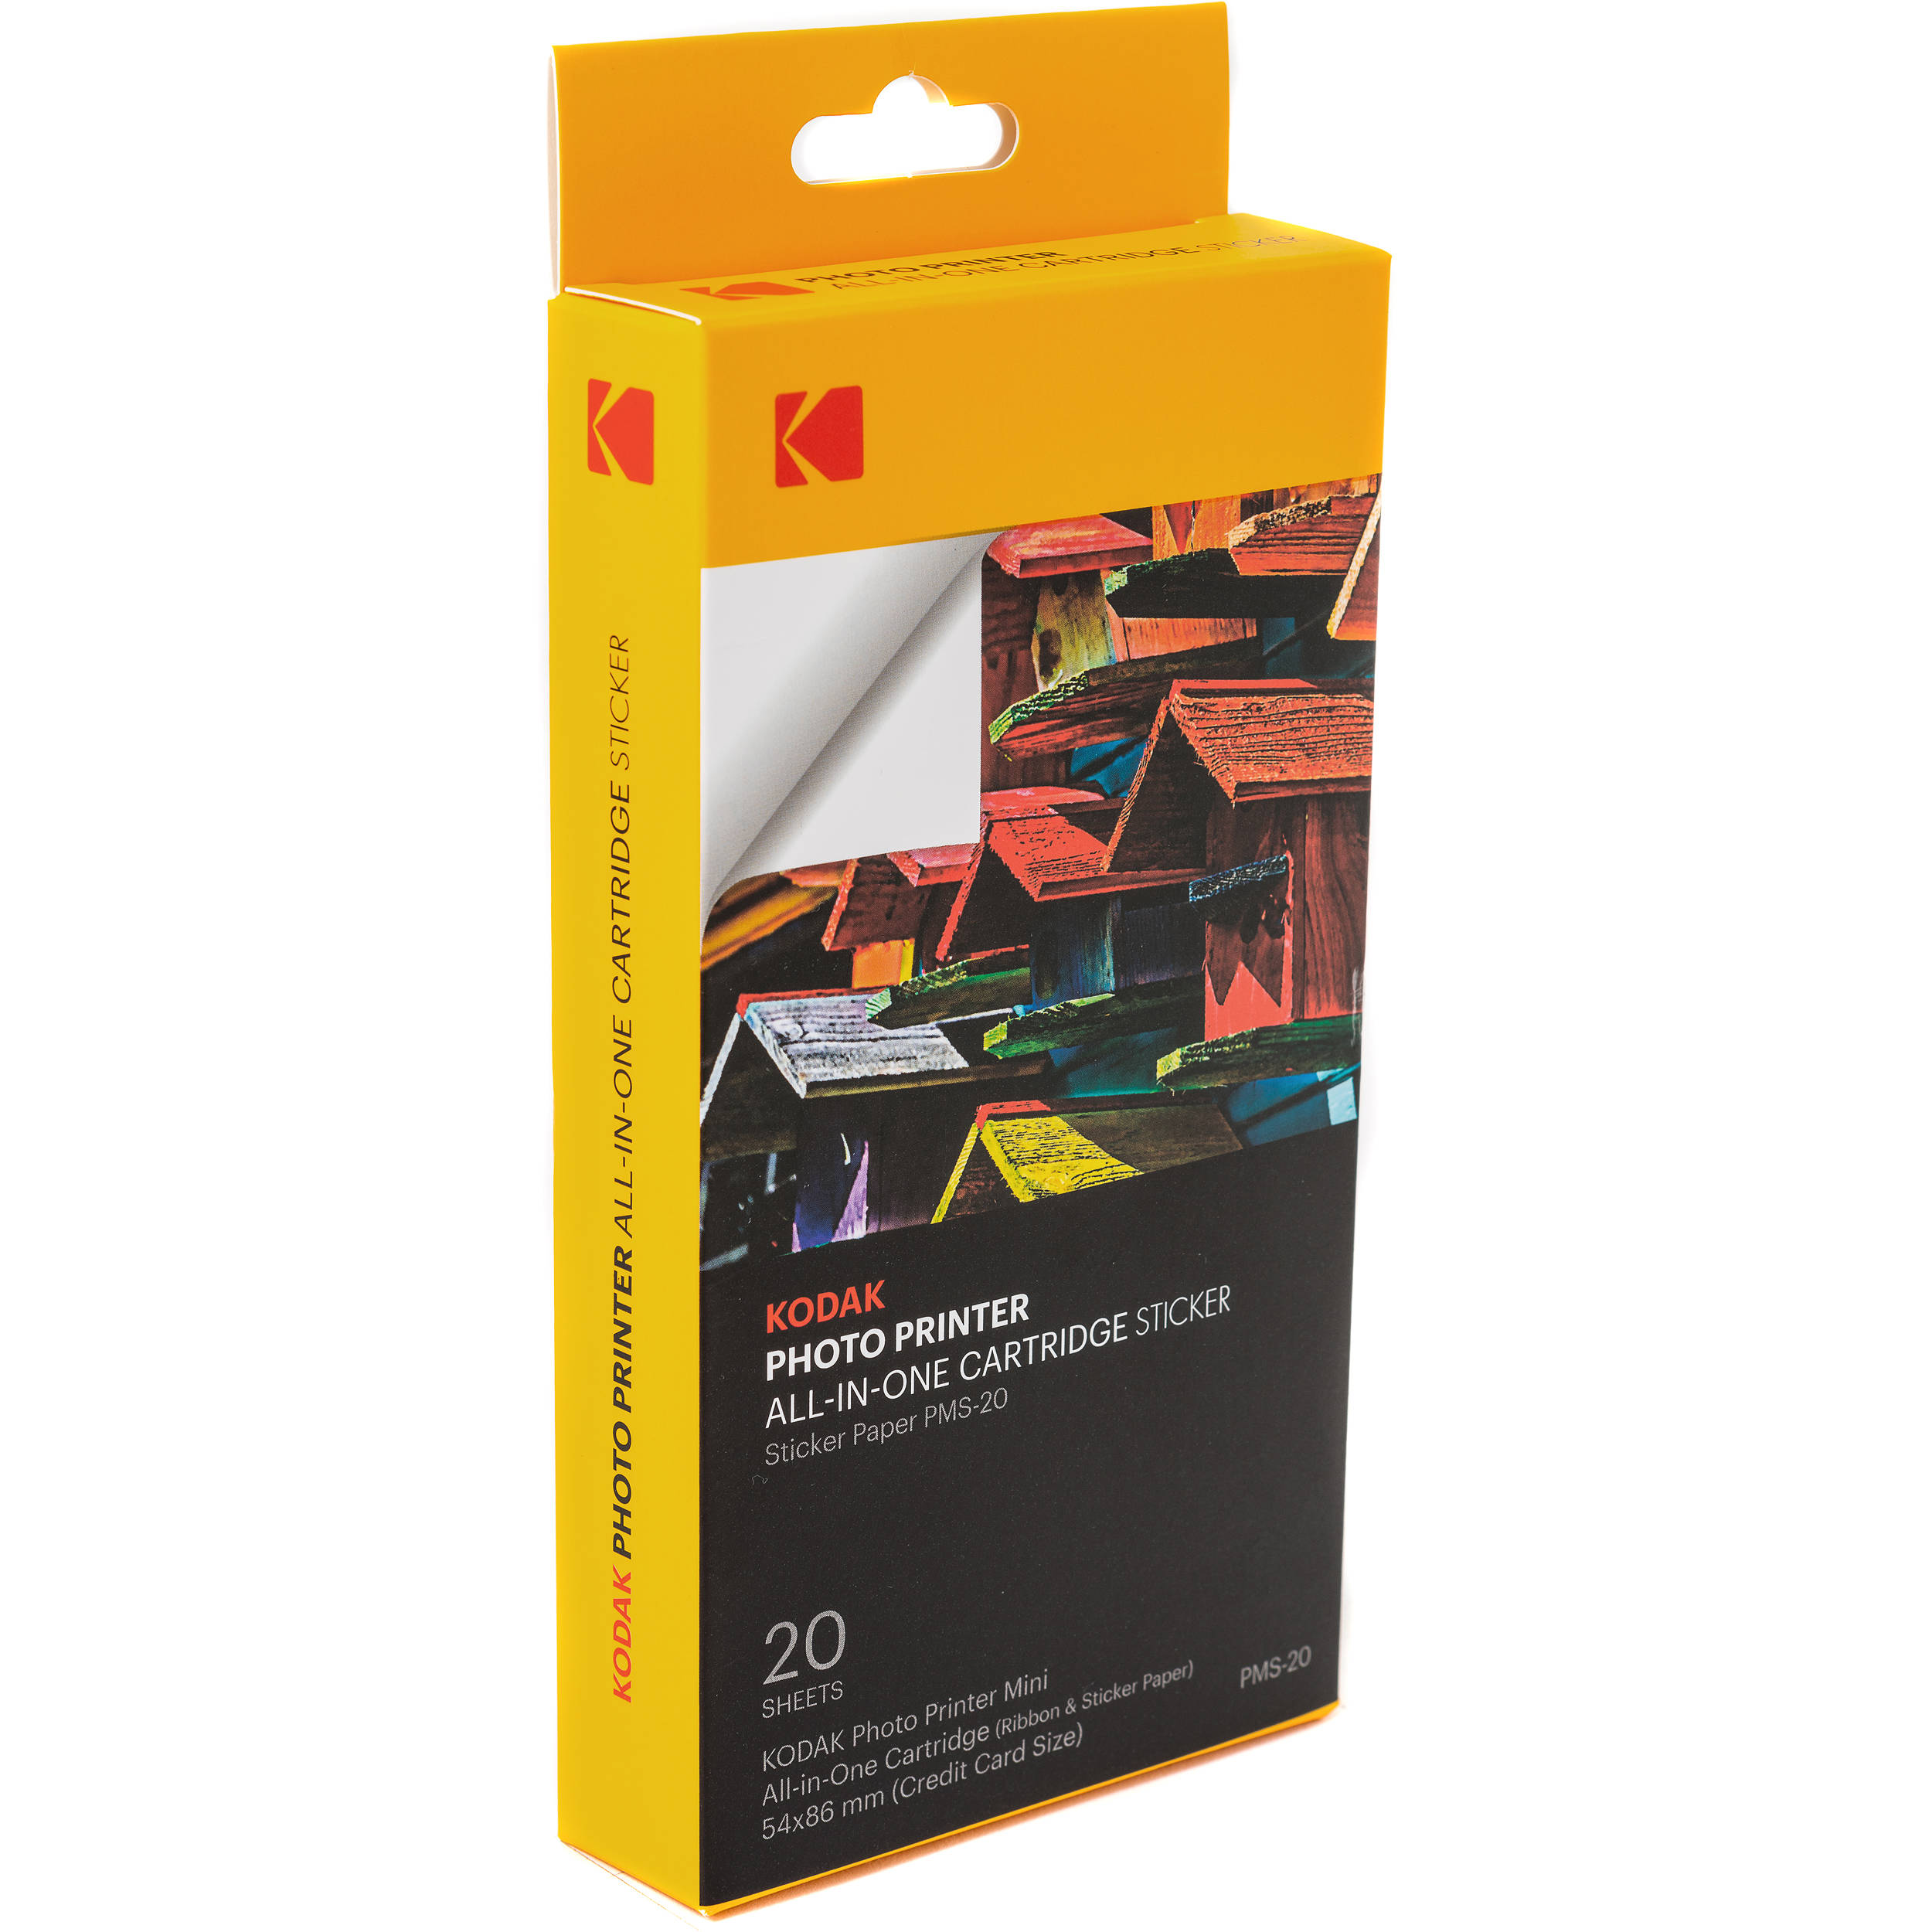 Kodak pms 20 photo printer mini sticker all in one cartridge set